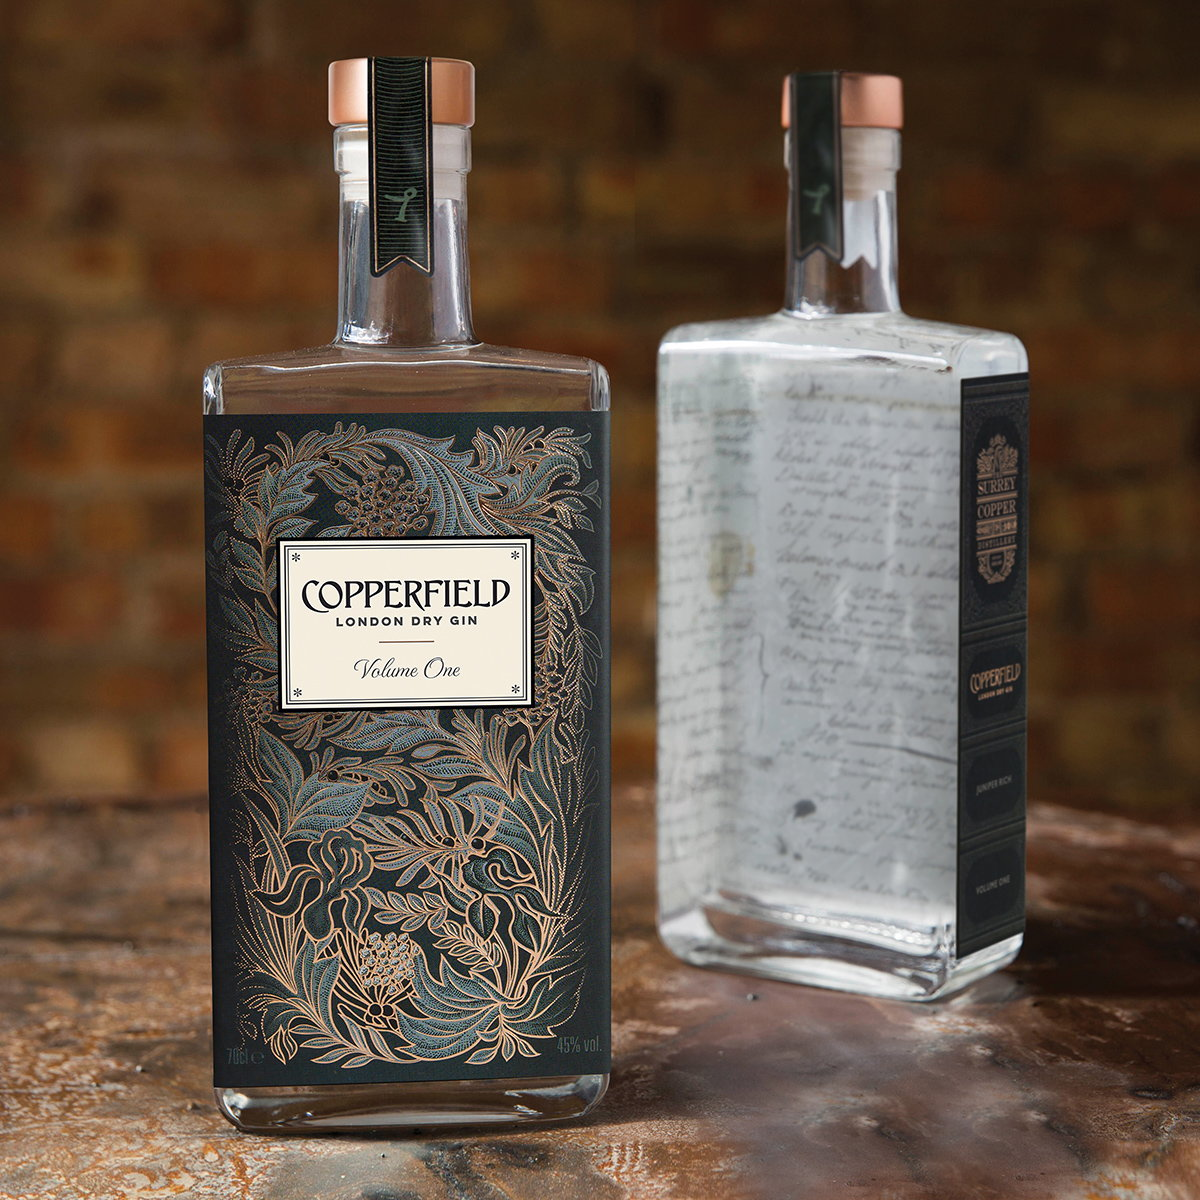 Nude Brand Creation Unveils Design for Copperfield London Dry Gin